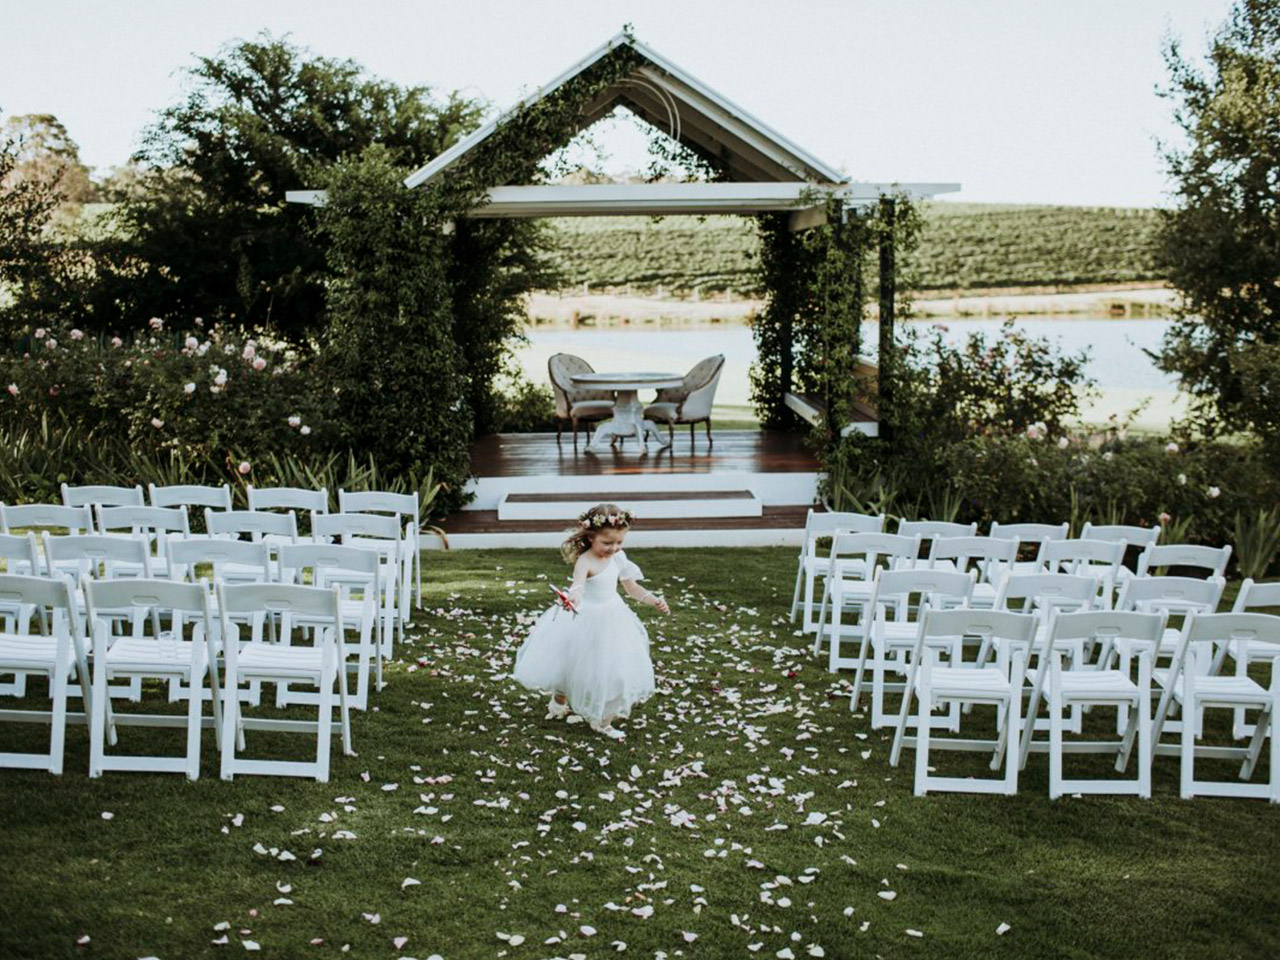 Garden Wedding Setup and a Flower Girl in the